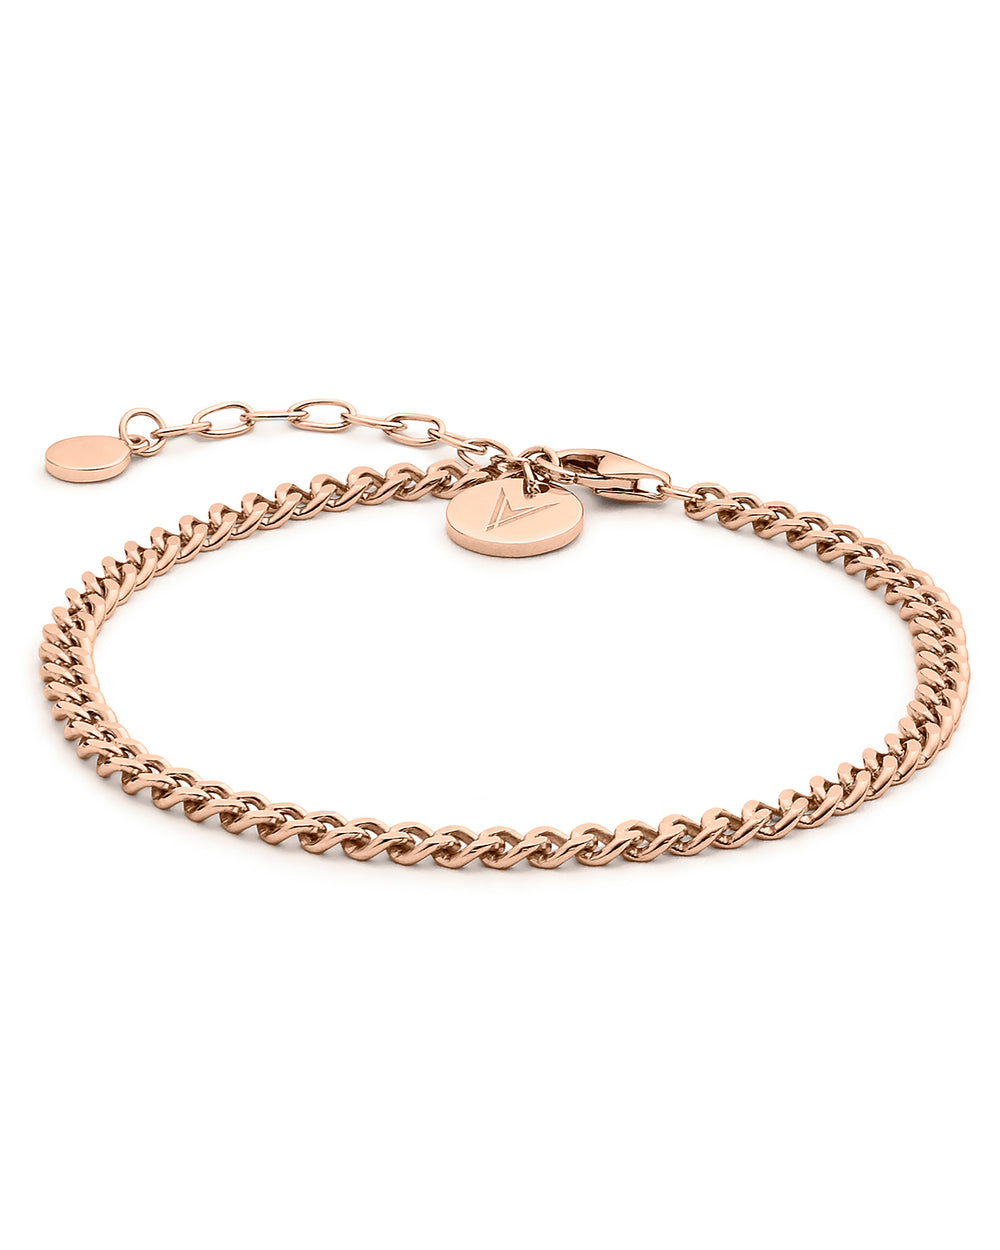 The Cuban Link Bracelet - Rose Gold